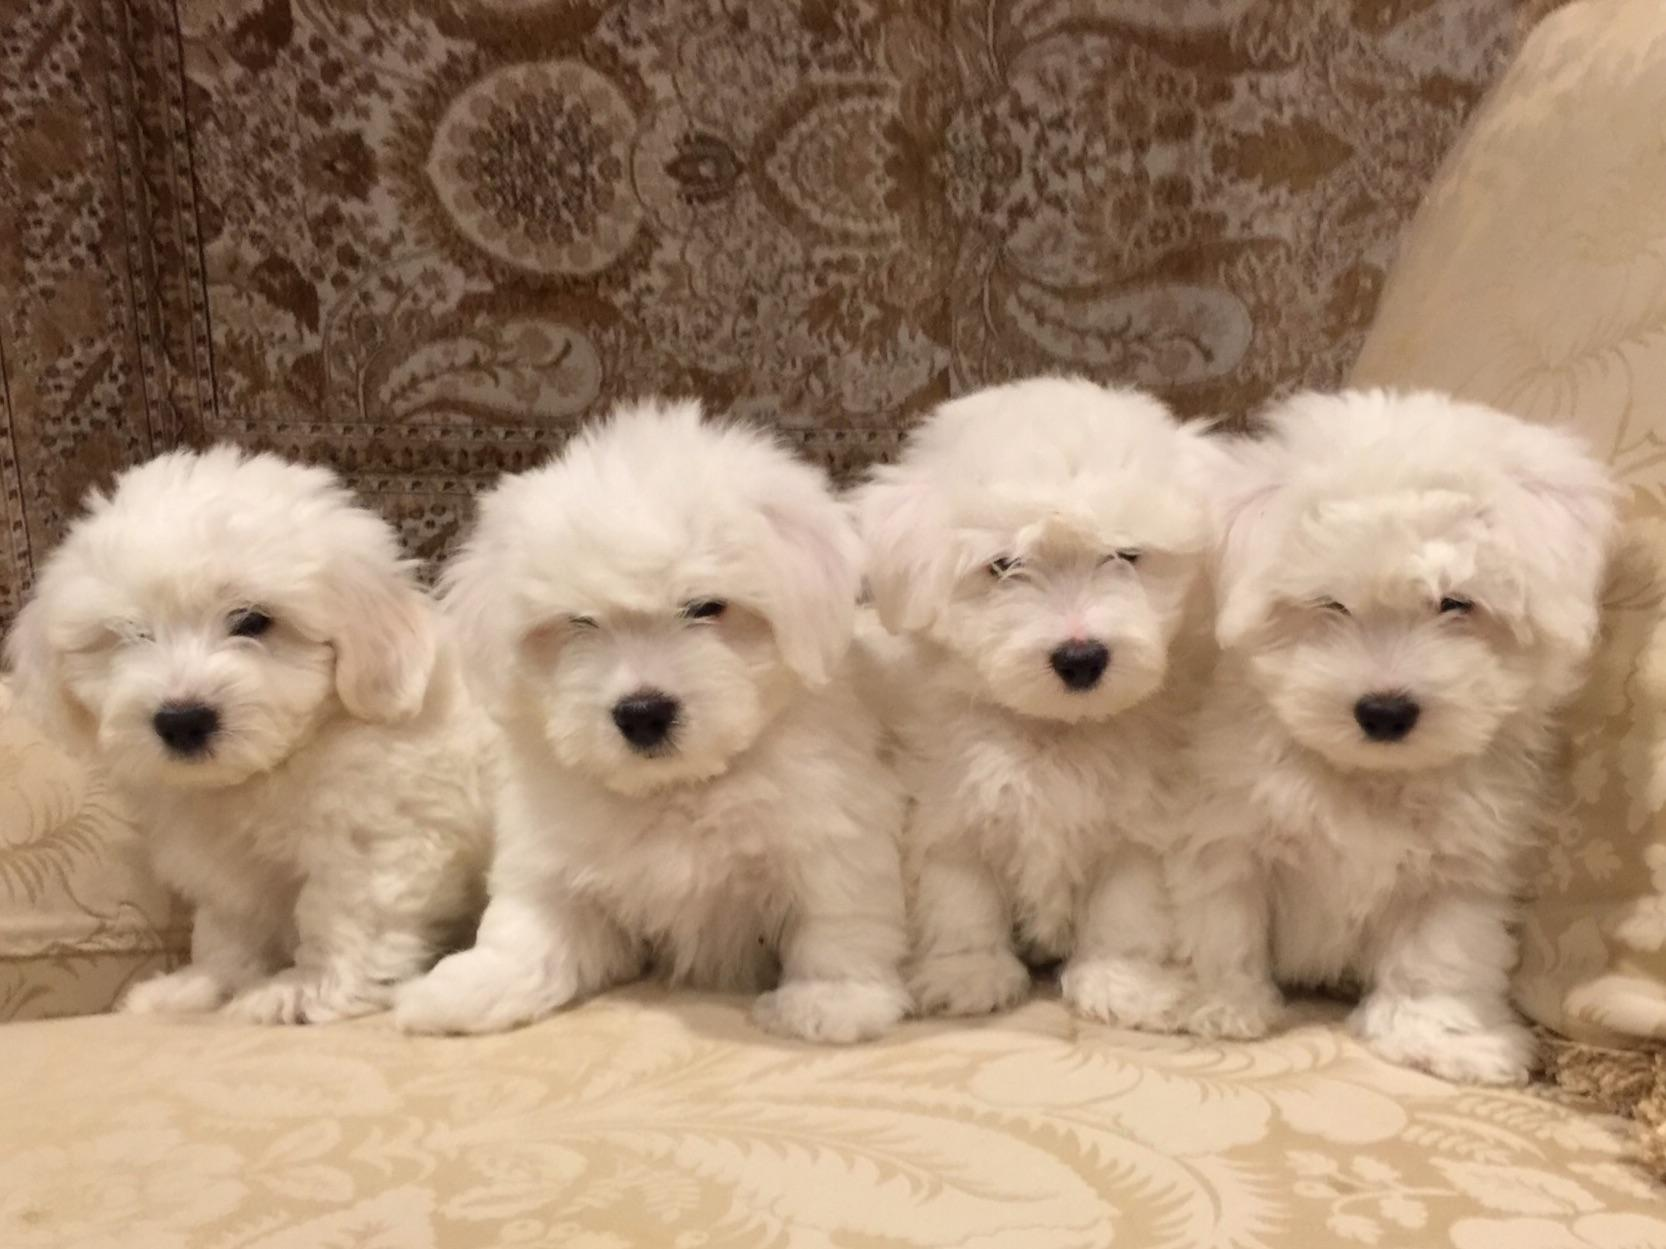 SHE Bichons And Cotons - Puppies For Sale